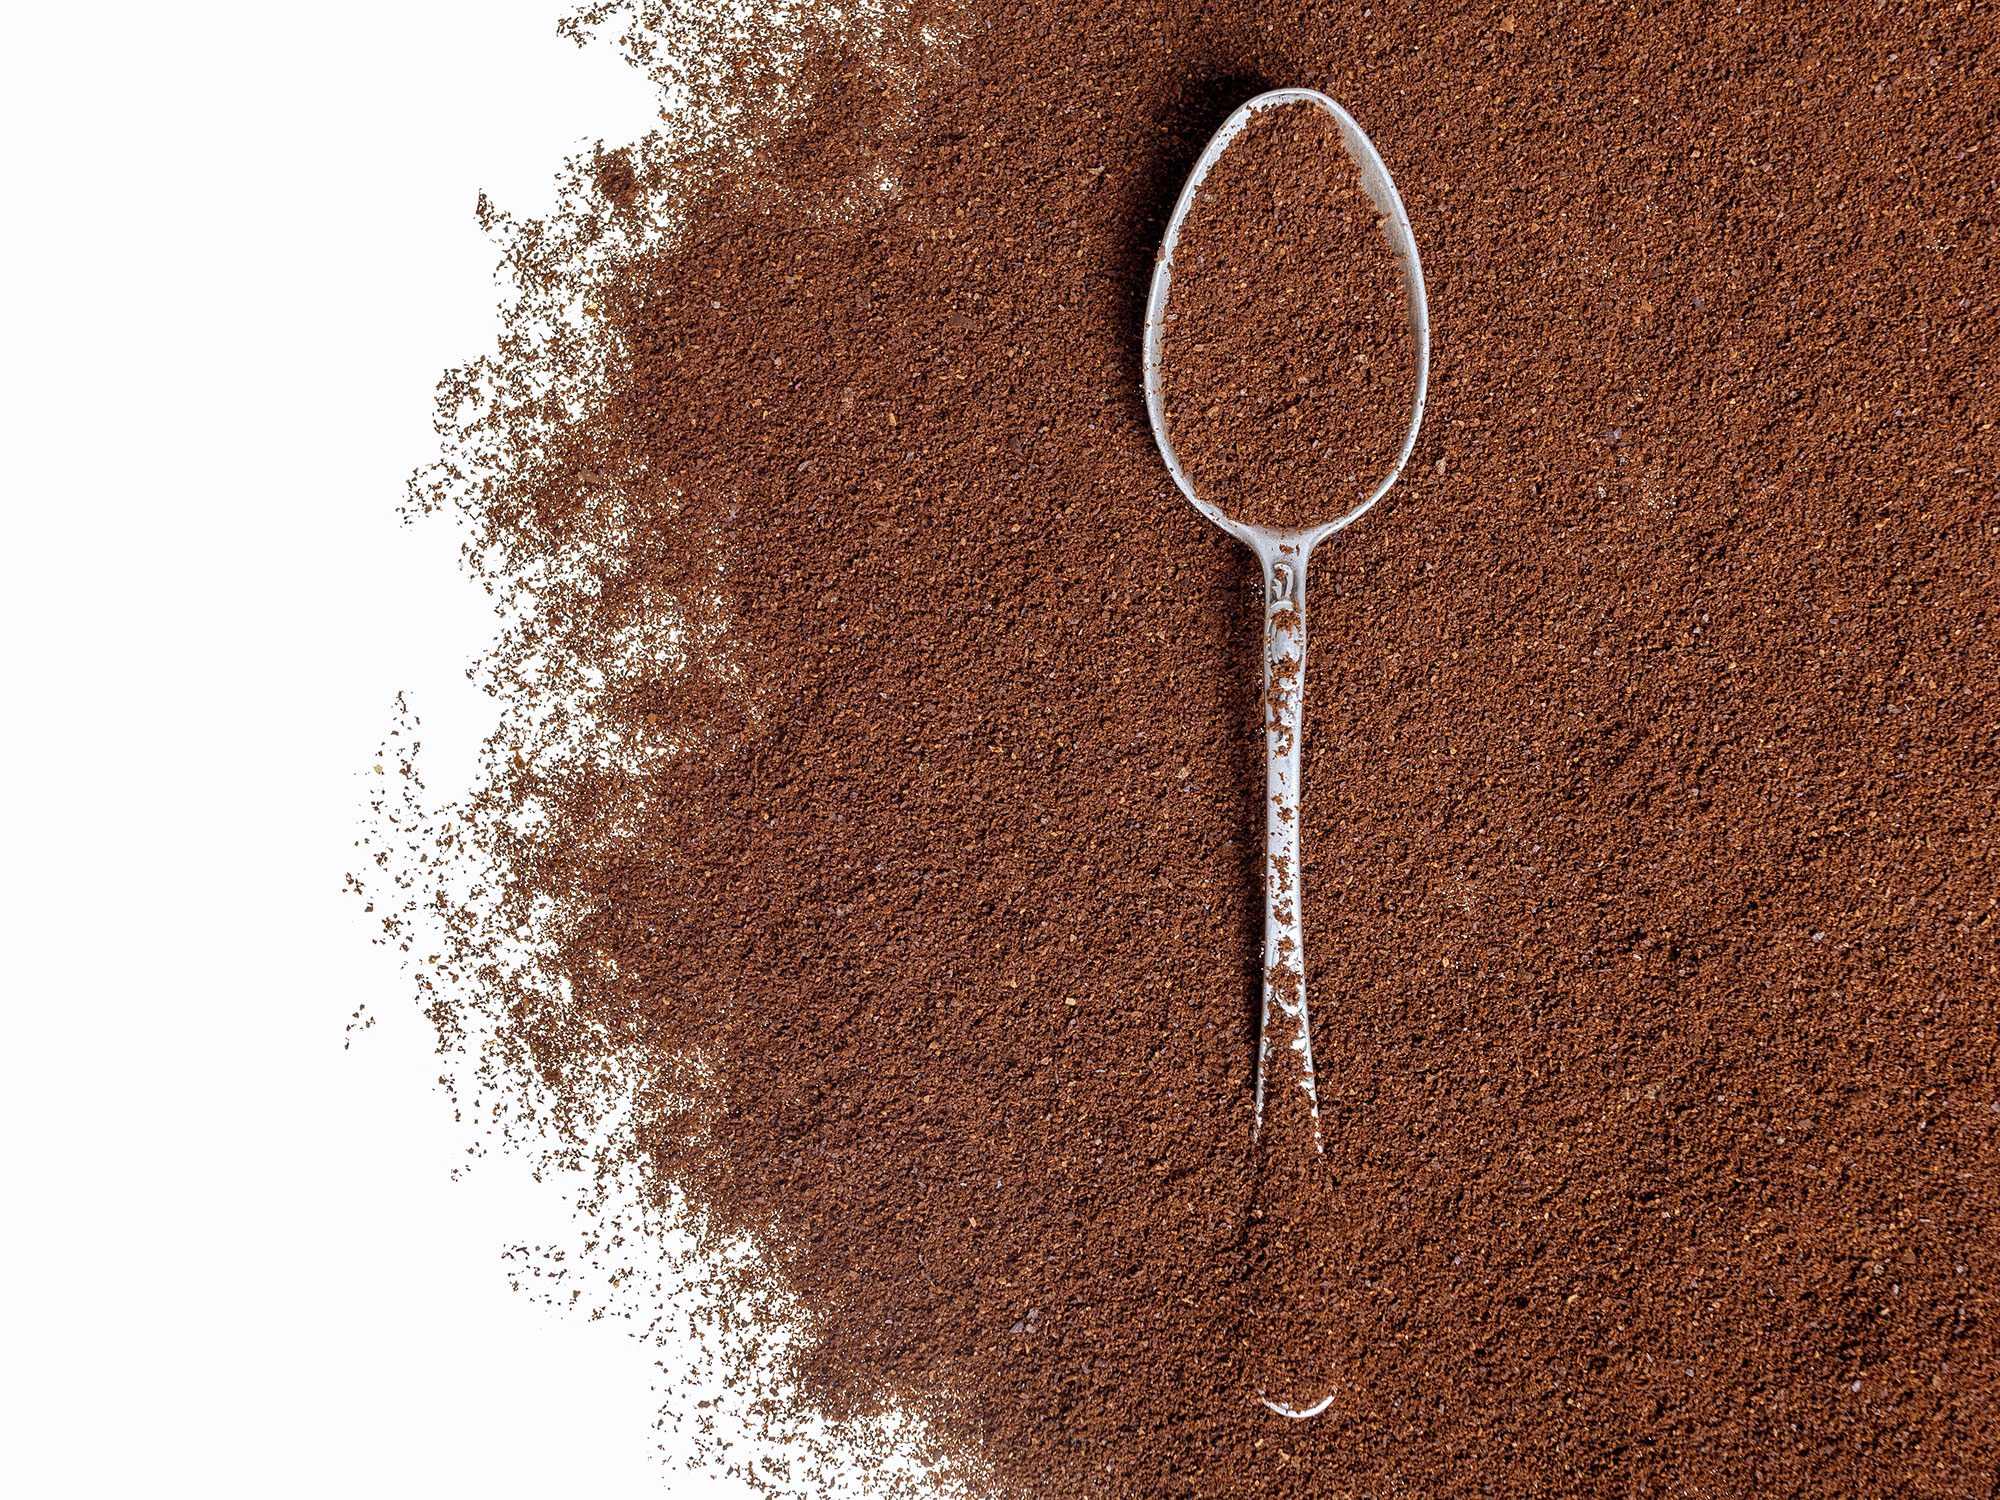 6 New Household Uses For Coffee Grounds